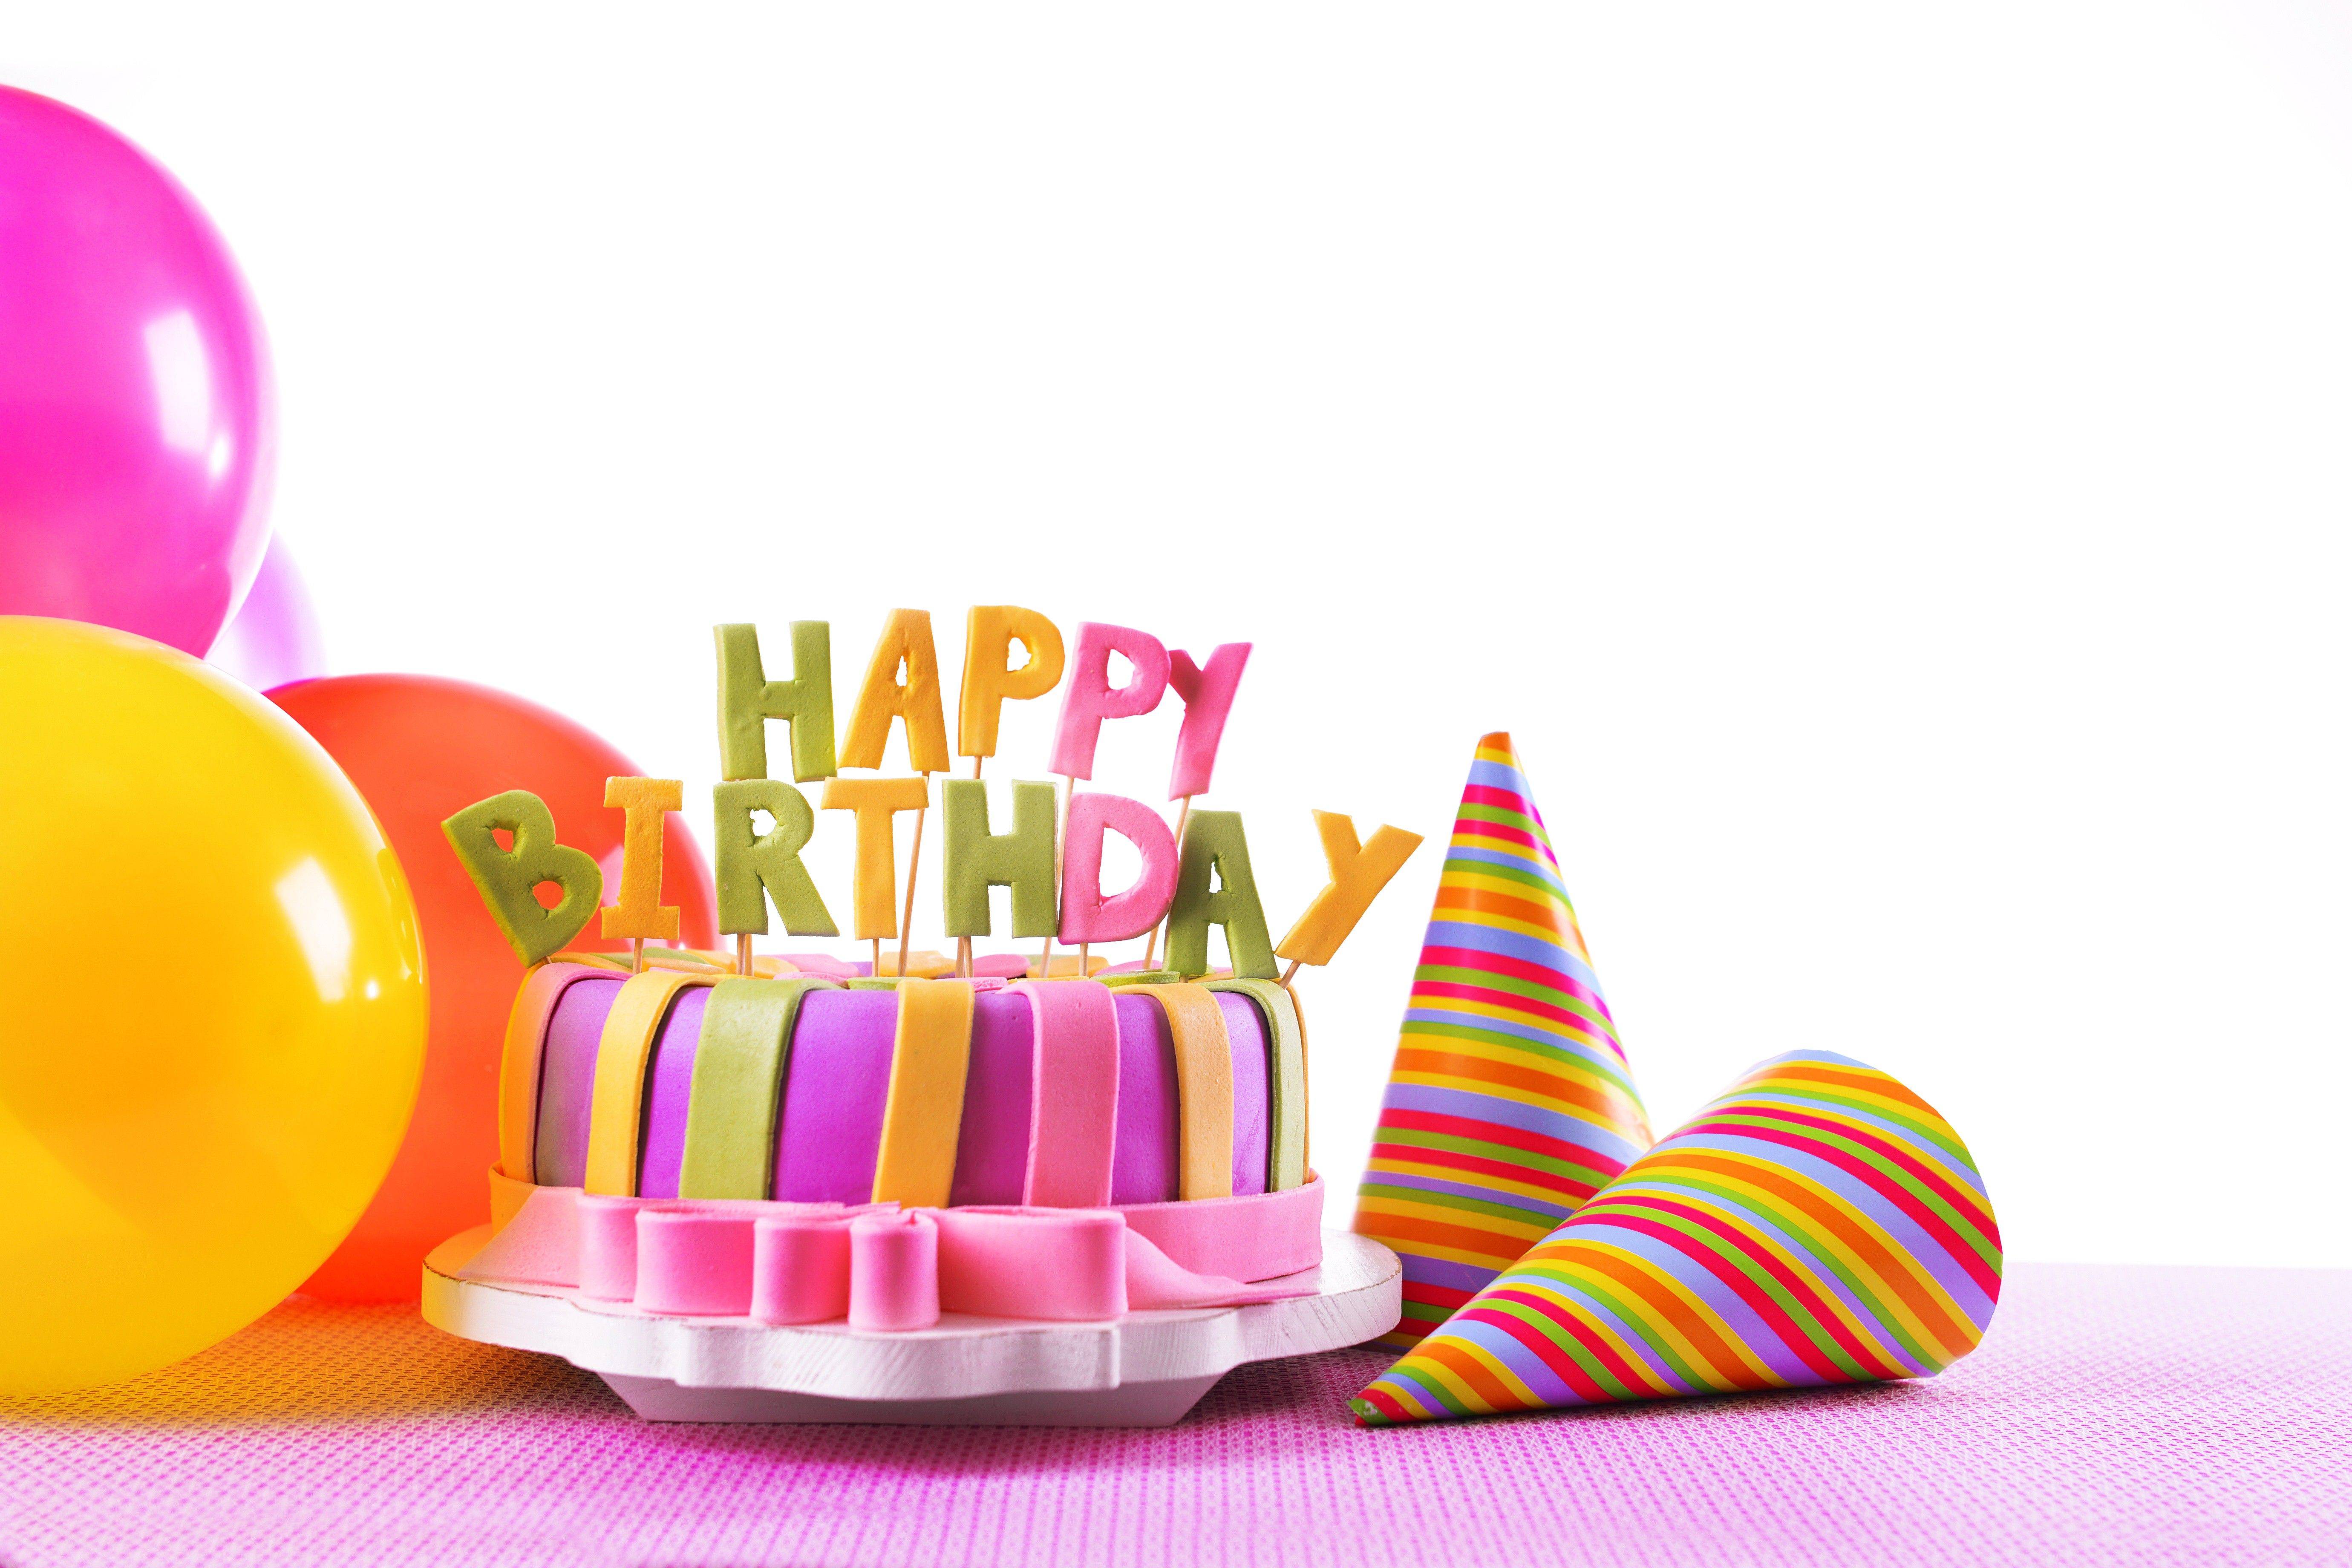 Happy Birthday on Cake HD Wallpapers